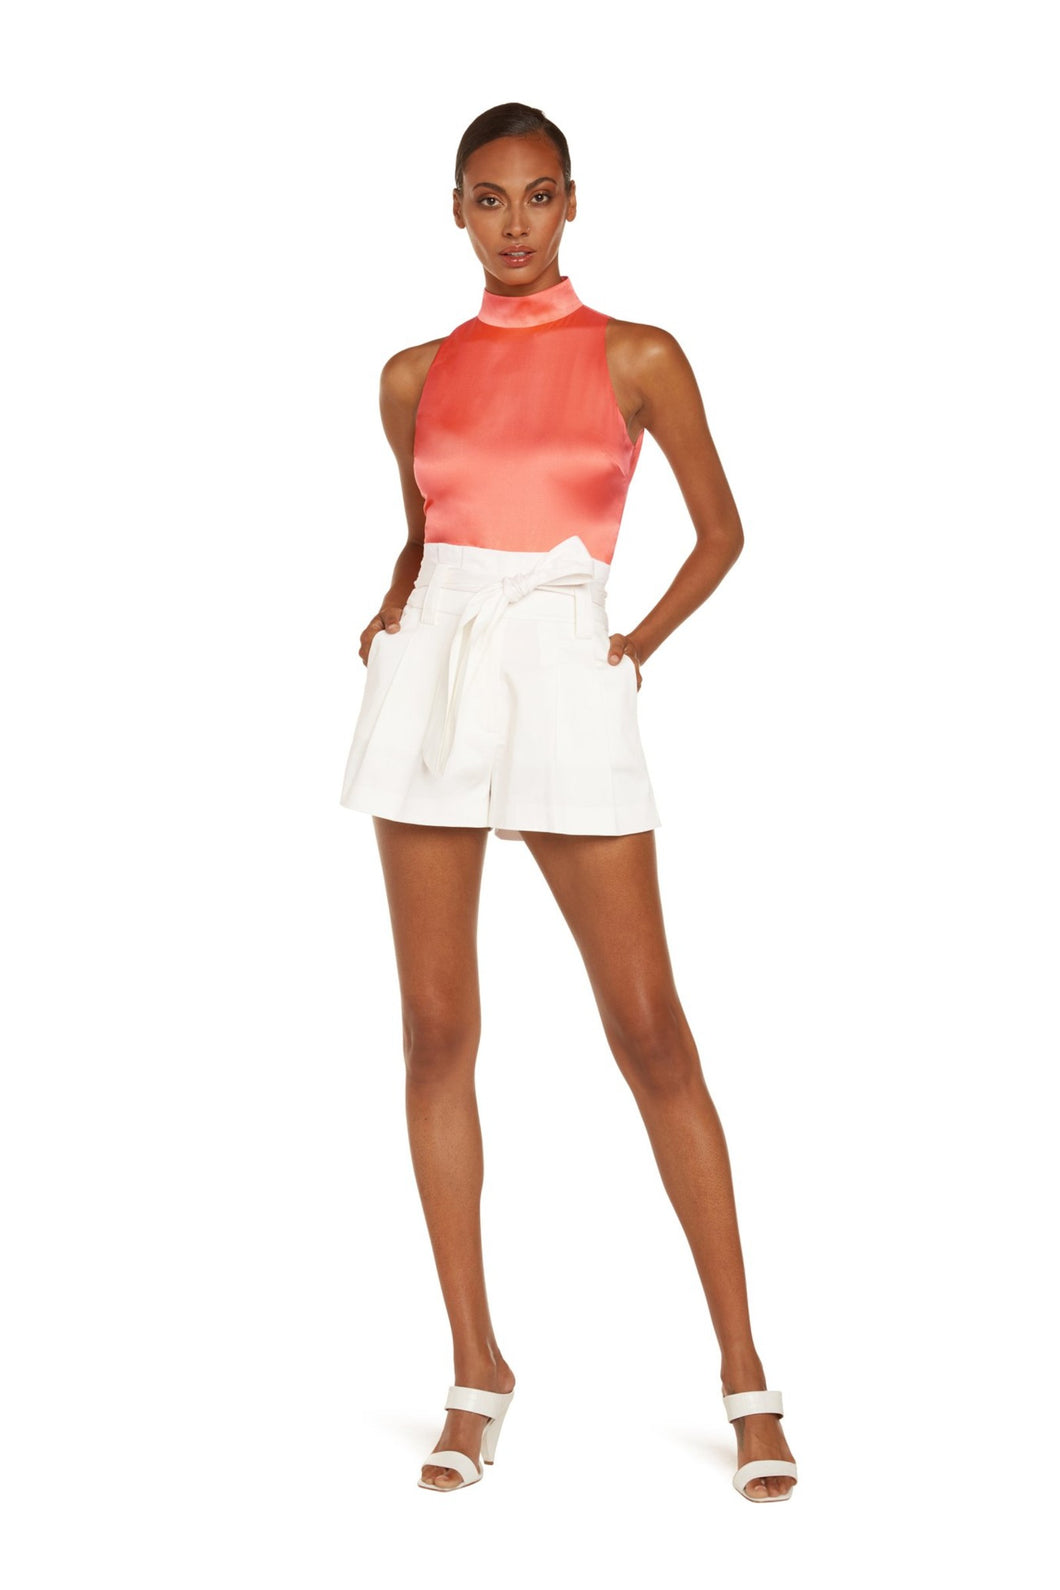 Skyler Sleeveless Turtleneck Bodysuit In Coral Stretch Silk Satin With Snap Closure At Bottom